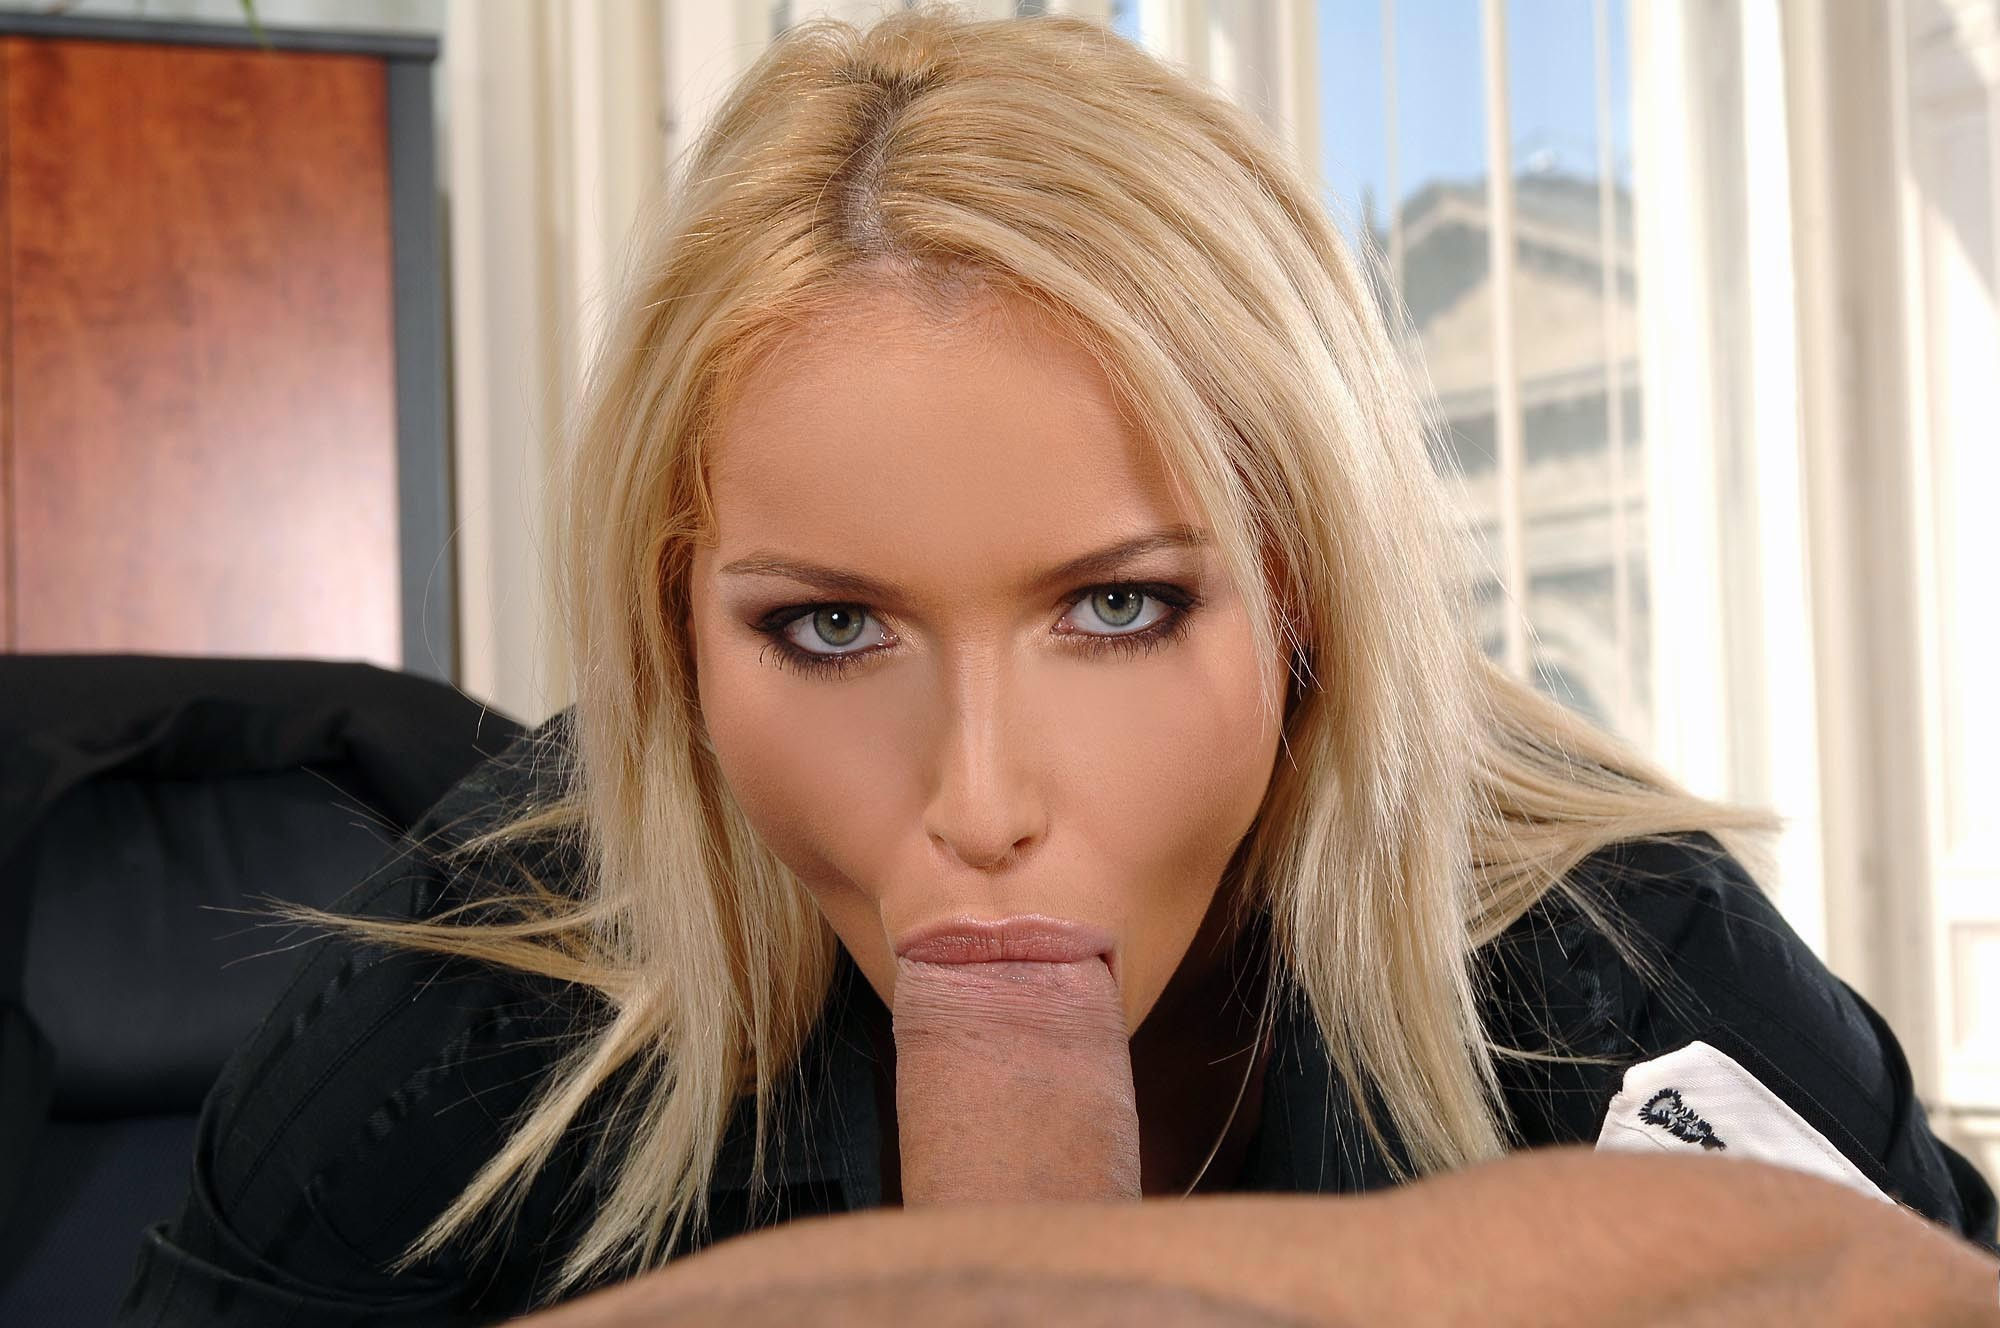 Gives blowjob galleries katie pov blonde